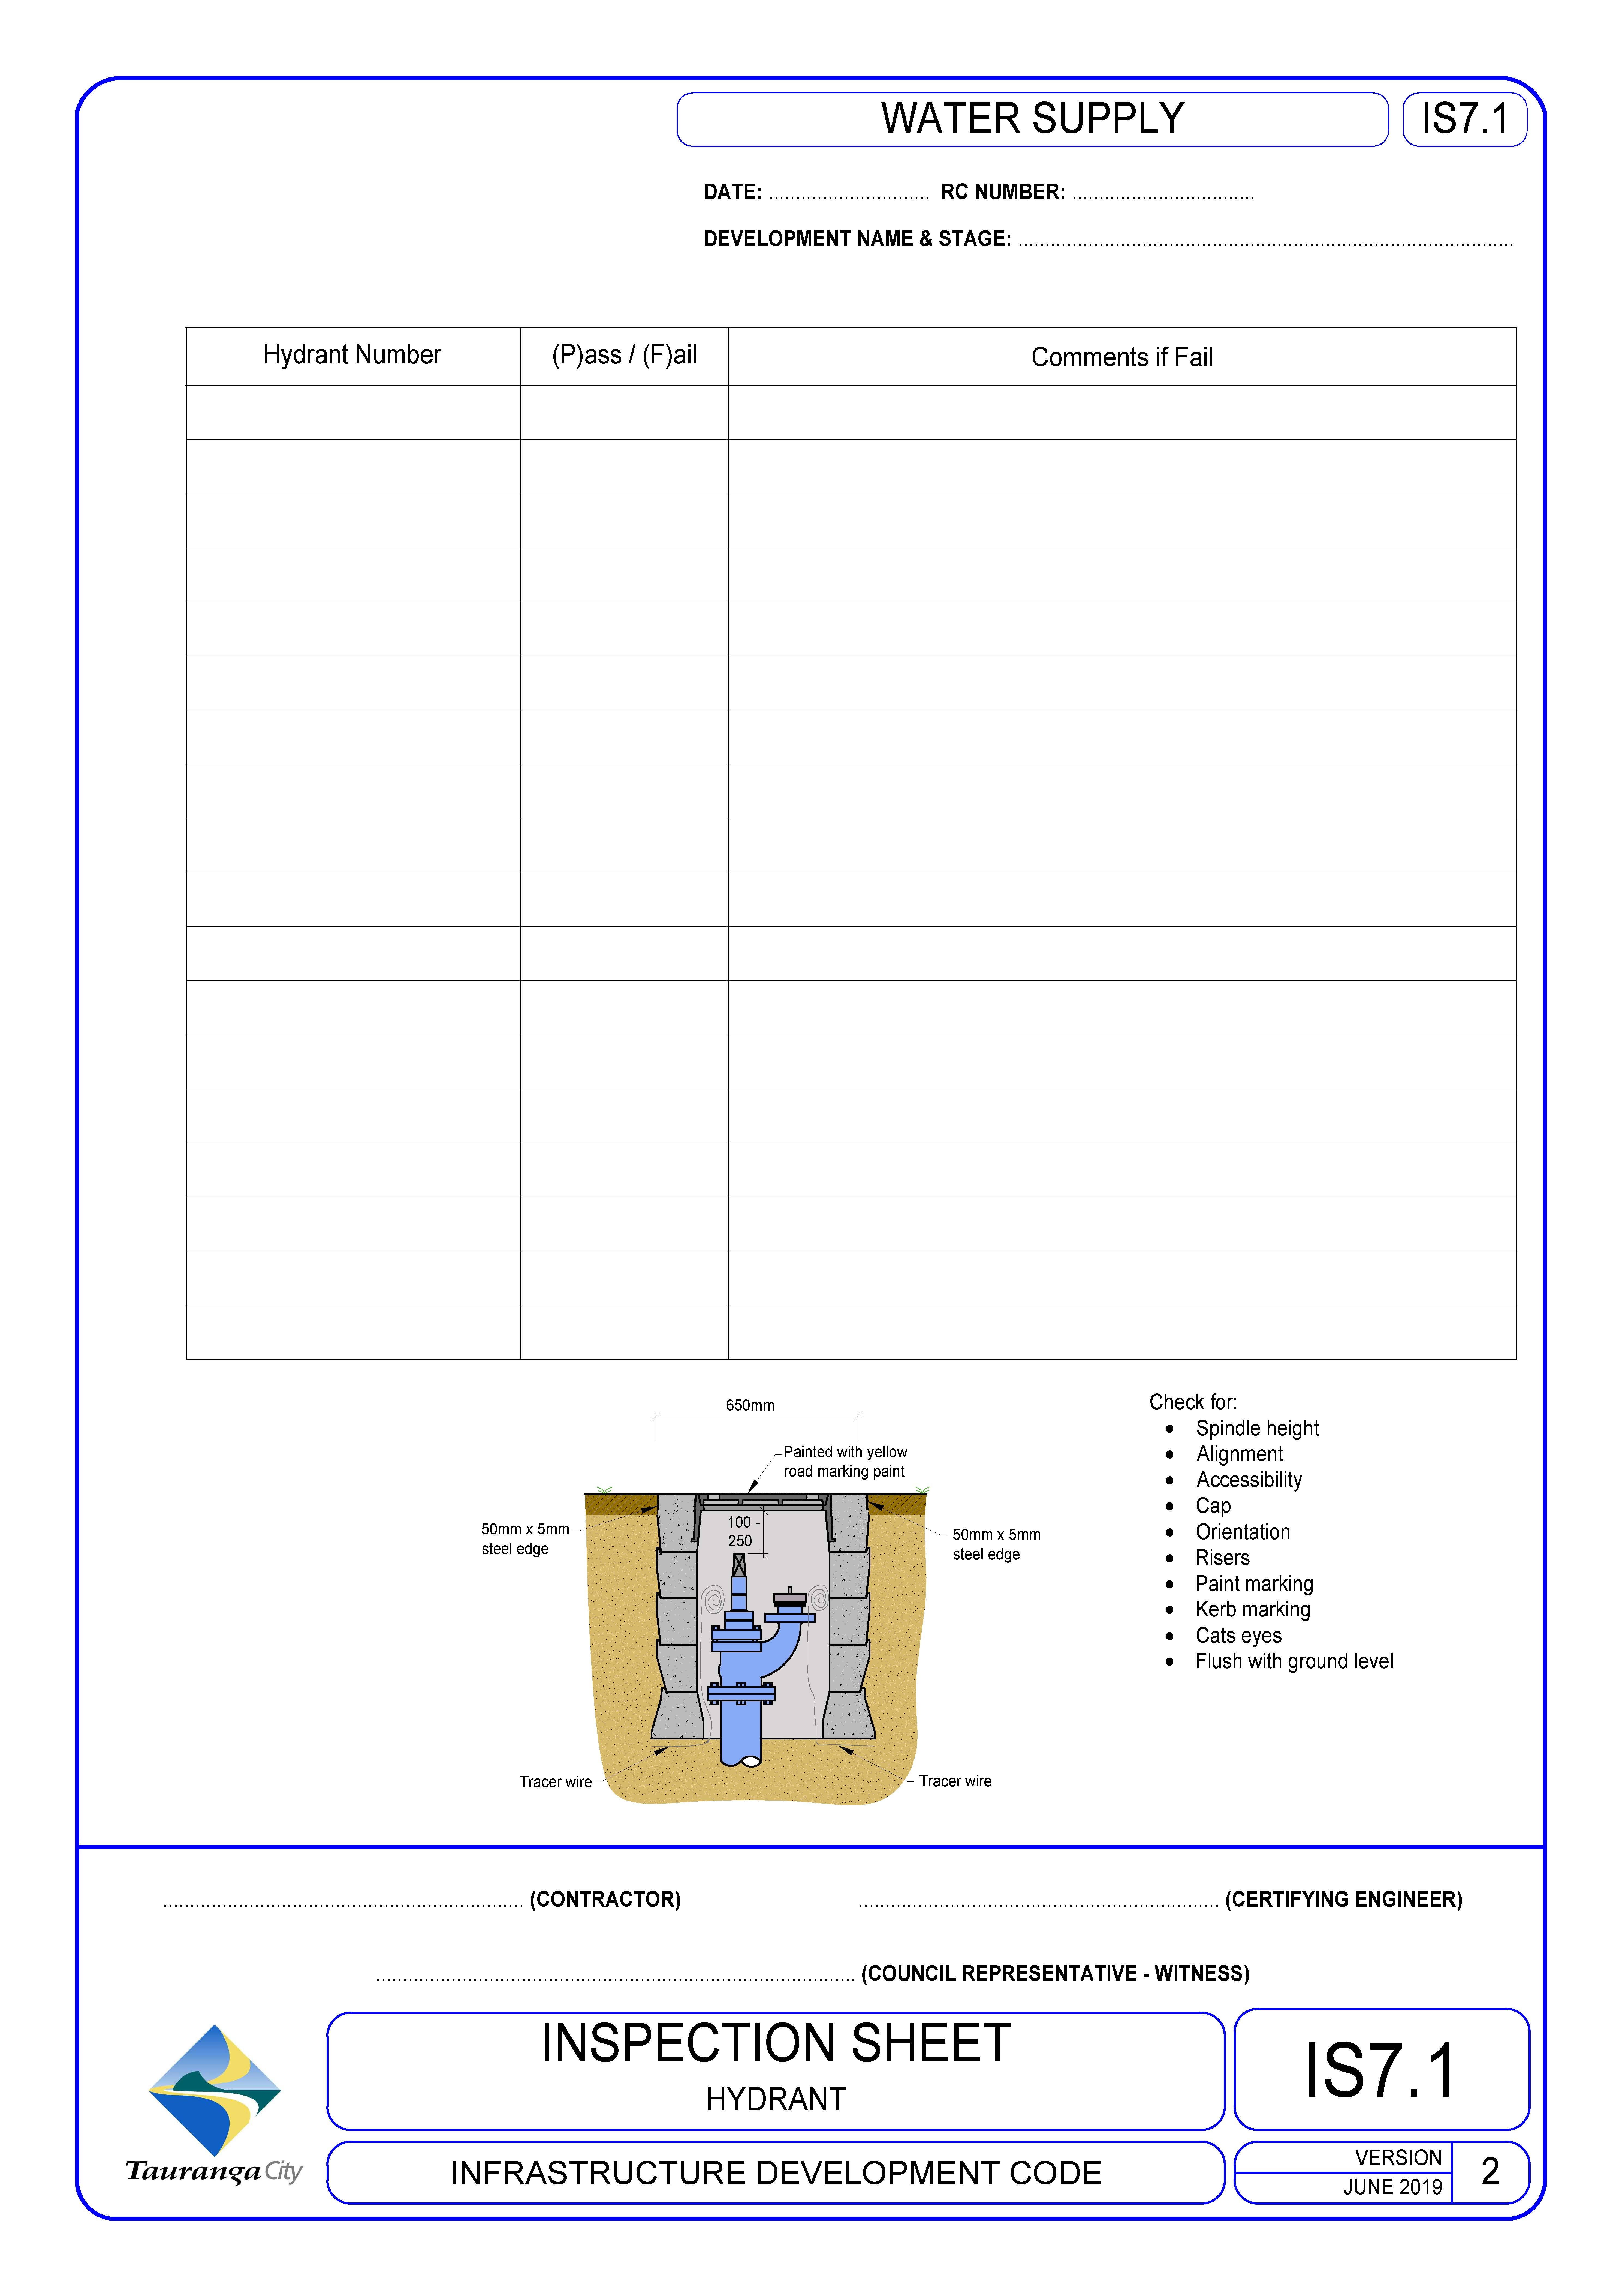 Inspection Sheet - Hydrant